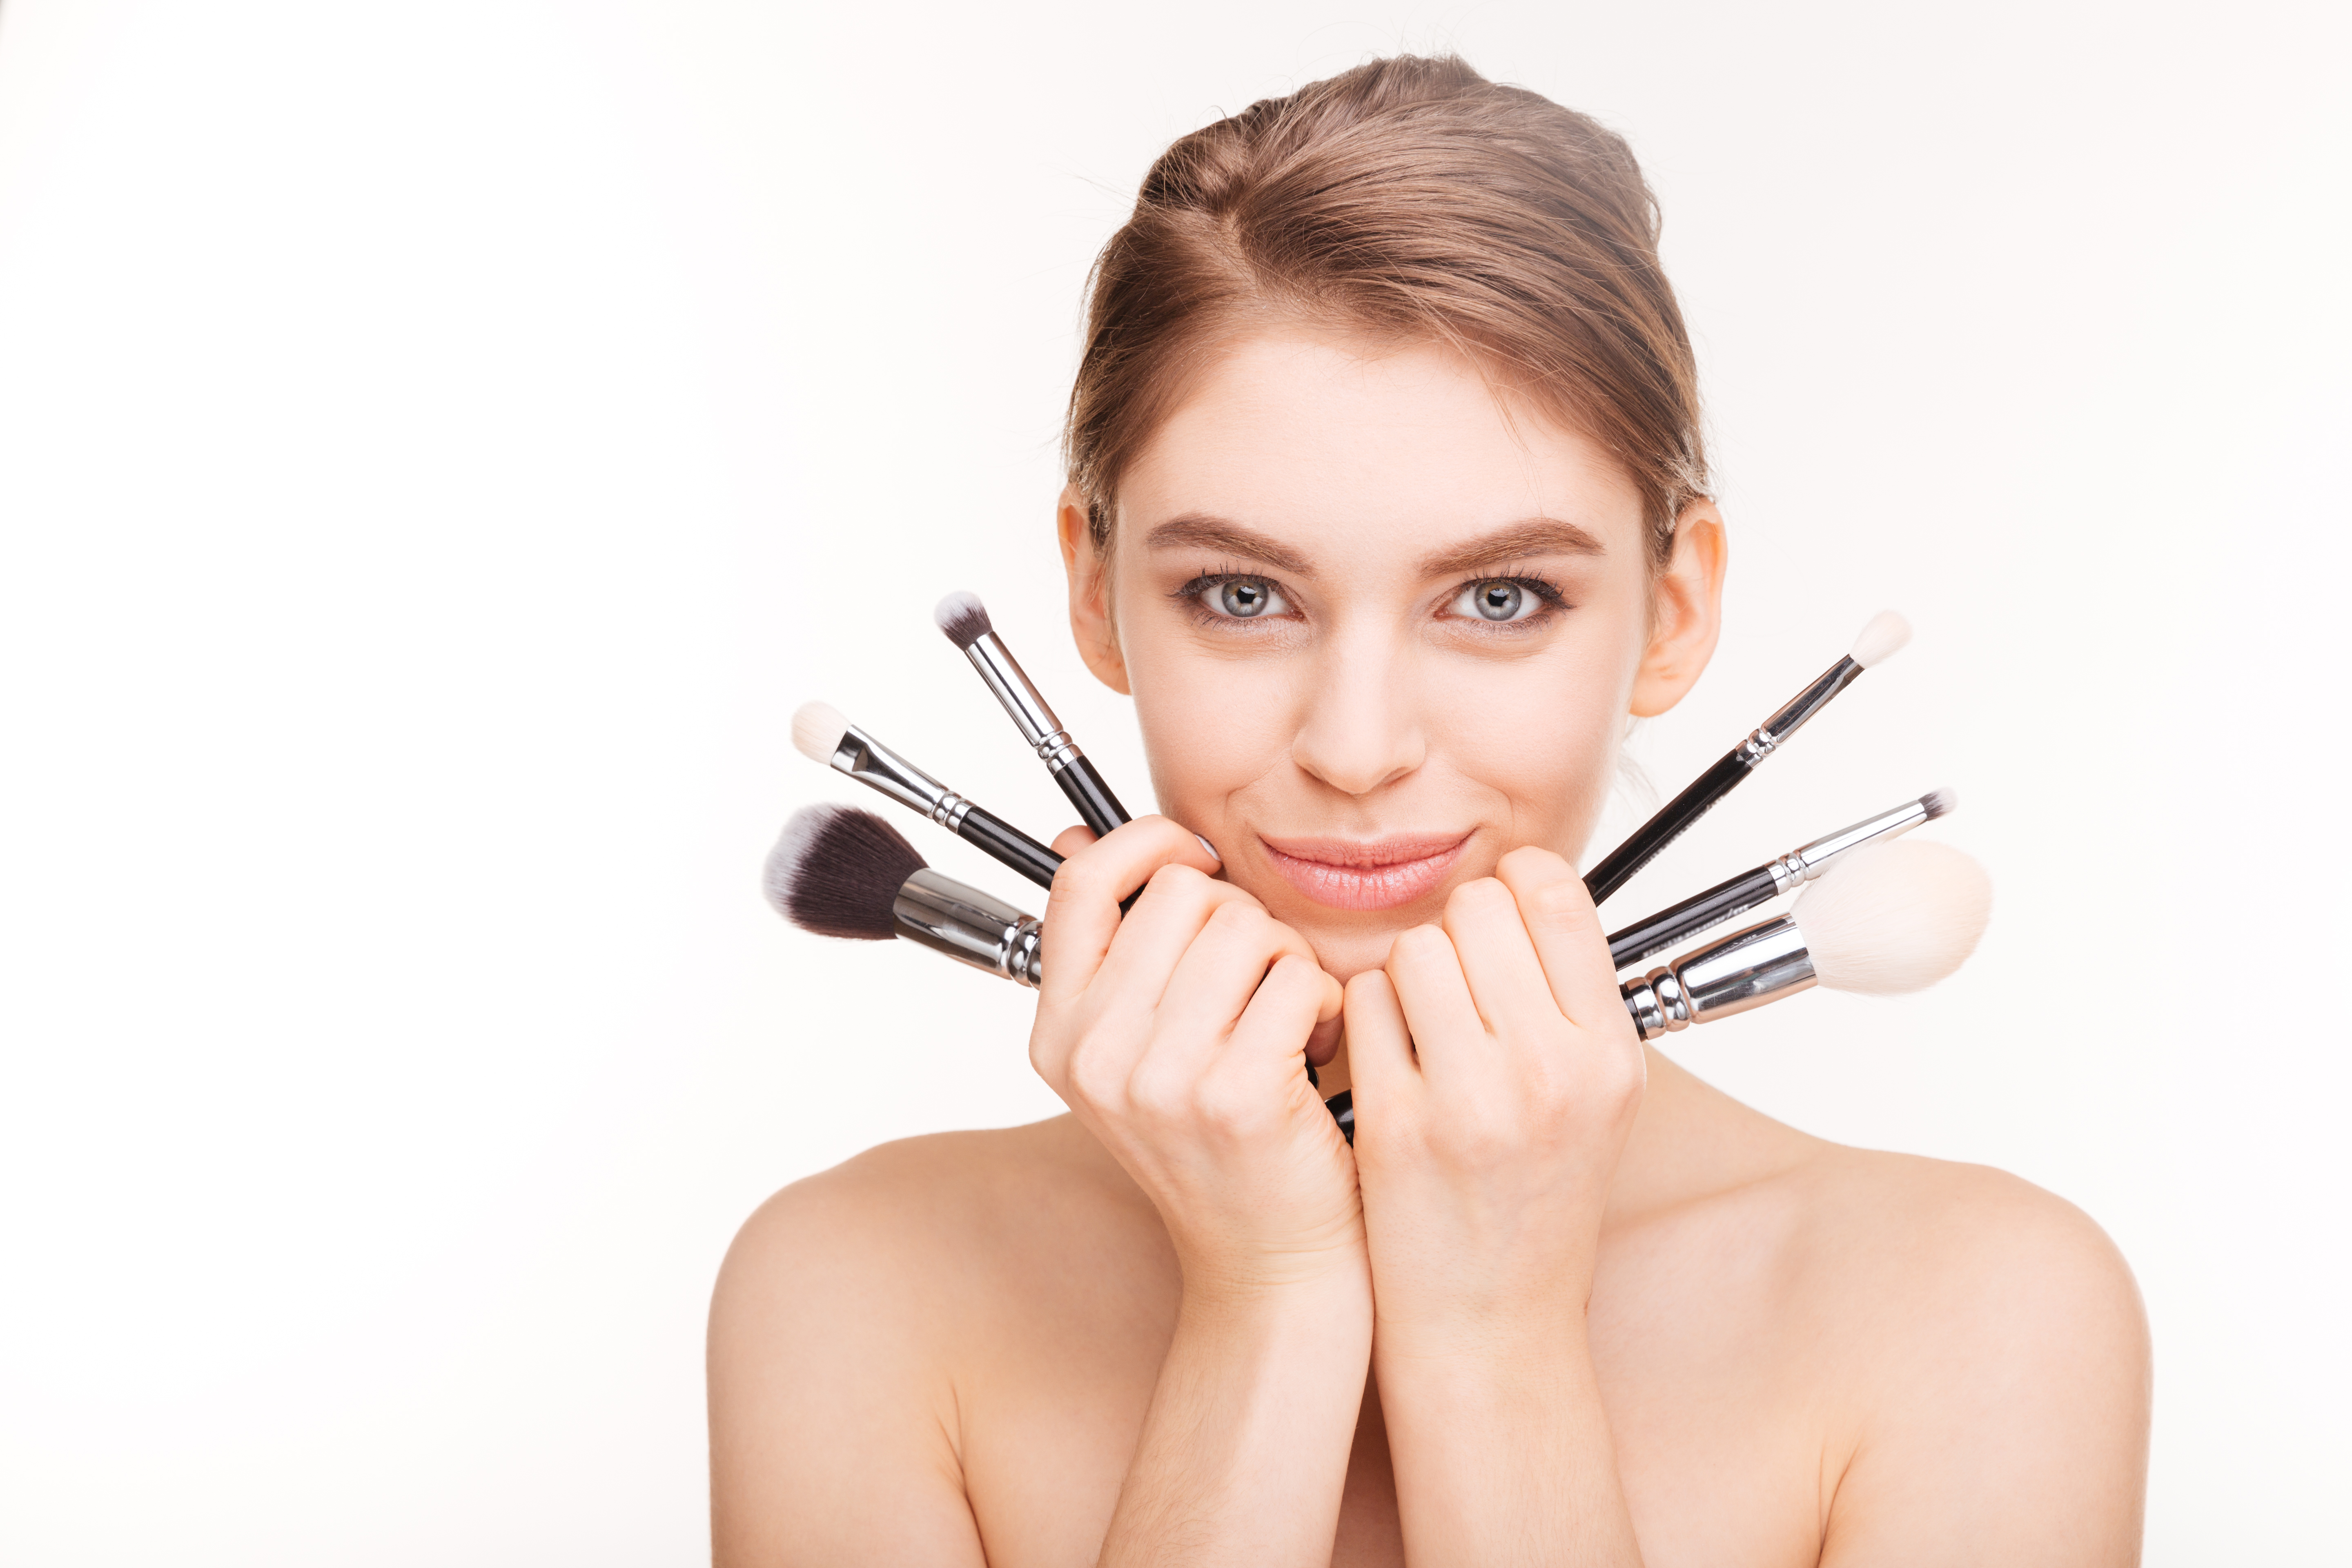 pretty smiling young woman with makeup brushes